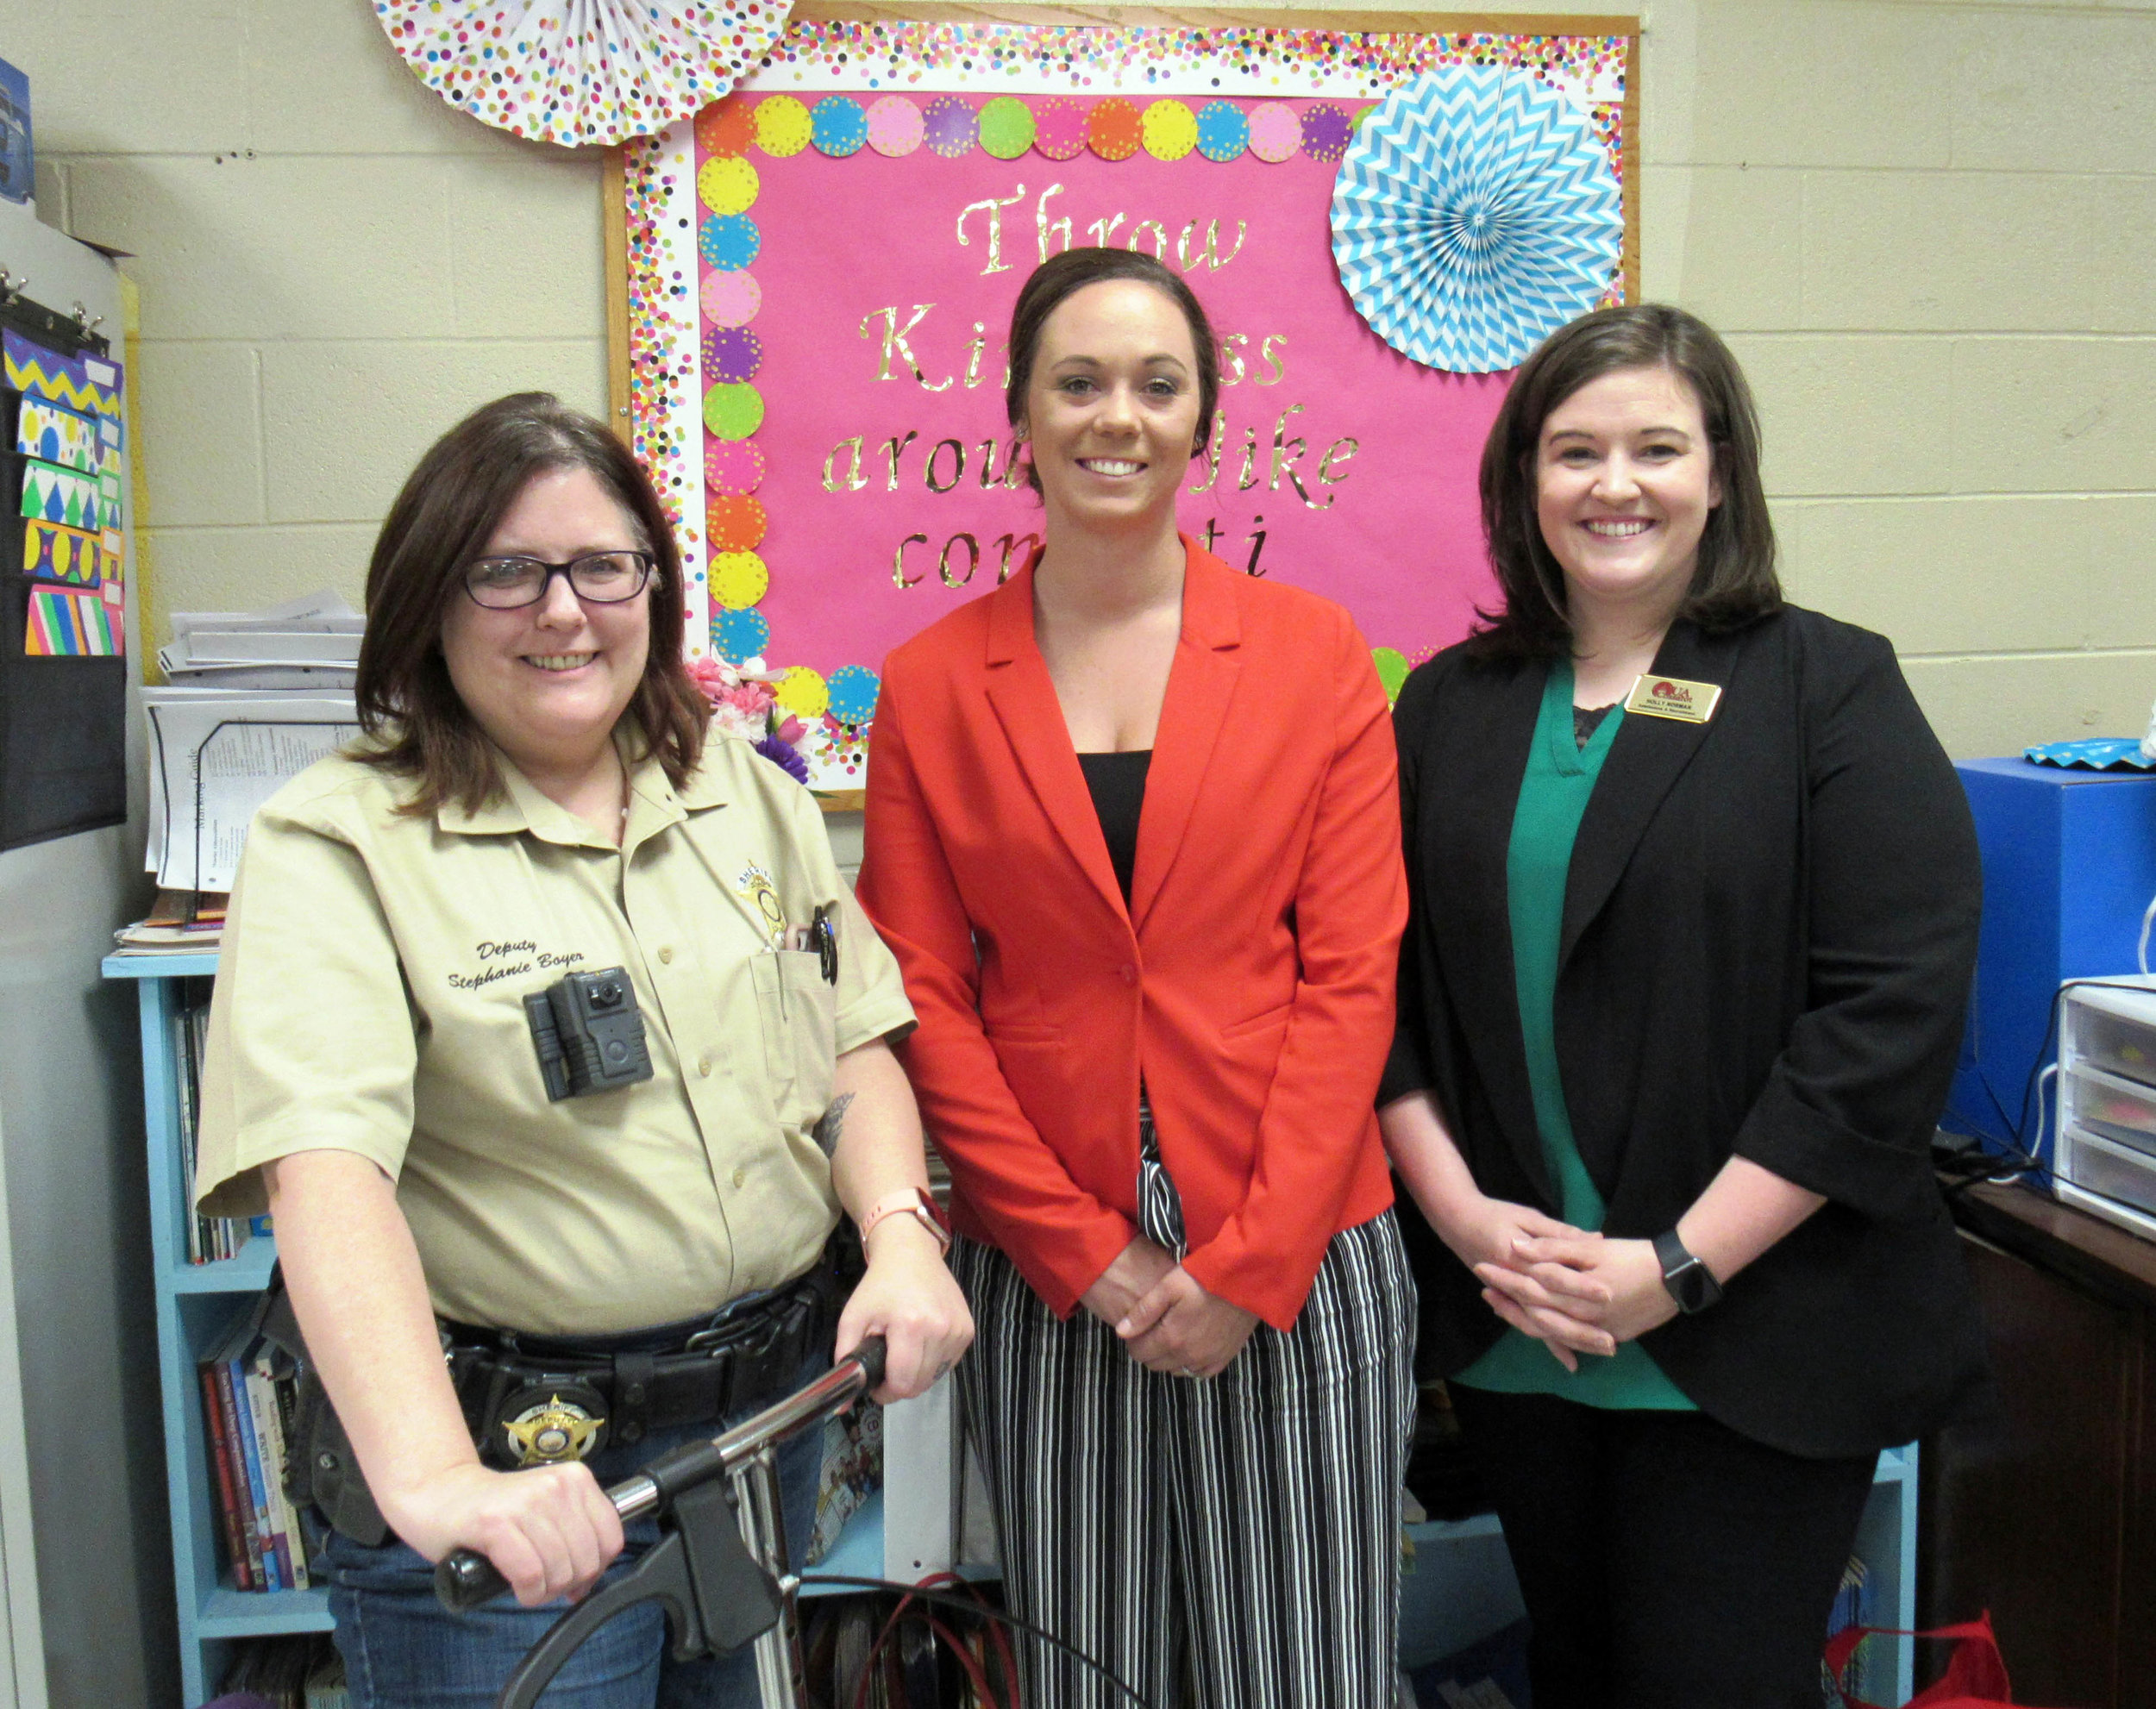 Deputy Stephanie Boyer, Shawna Parry and Holly Norman